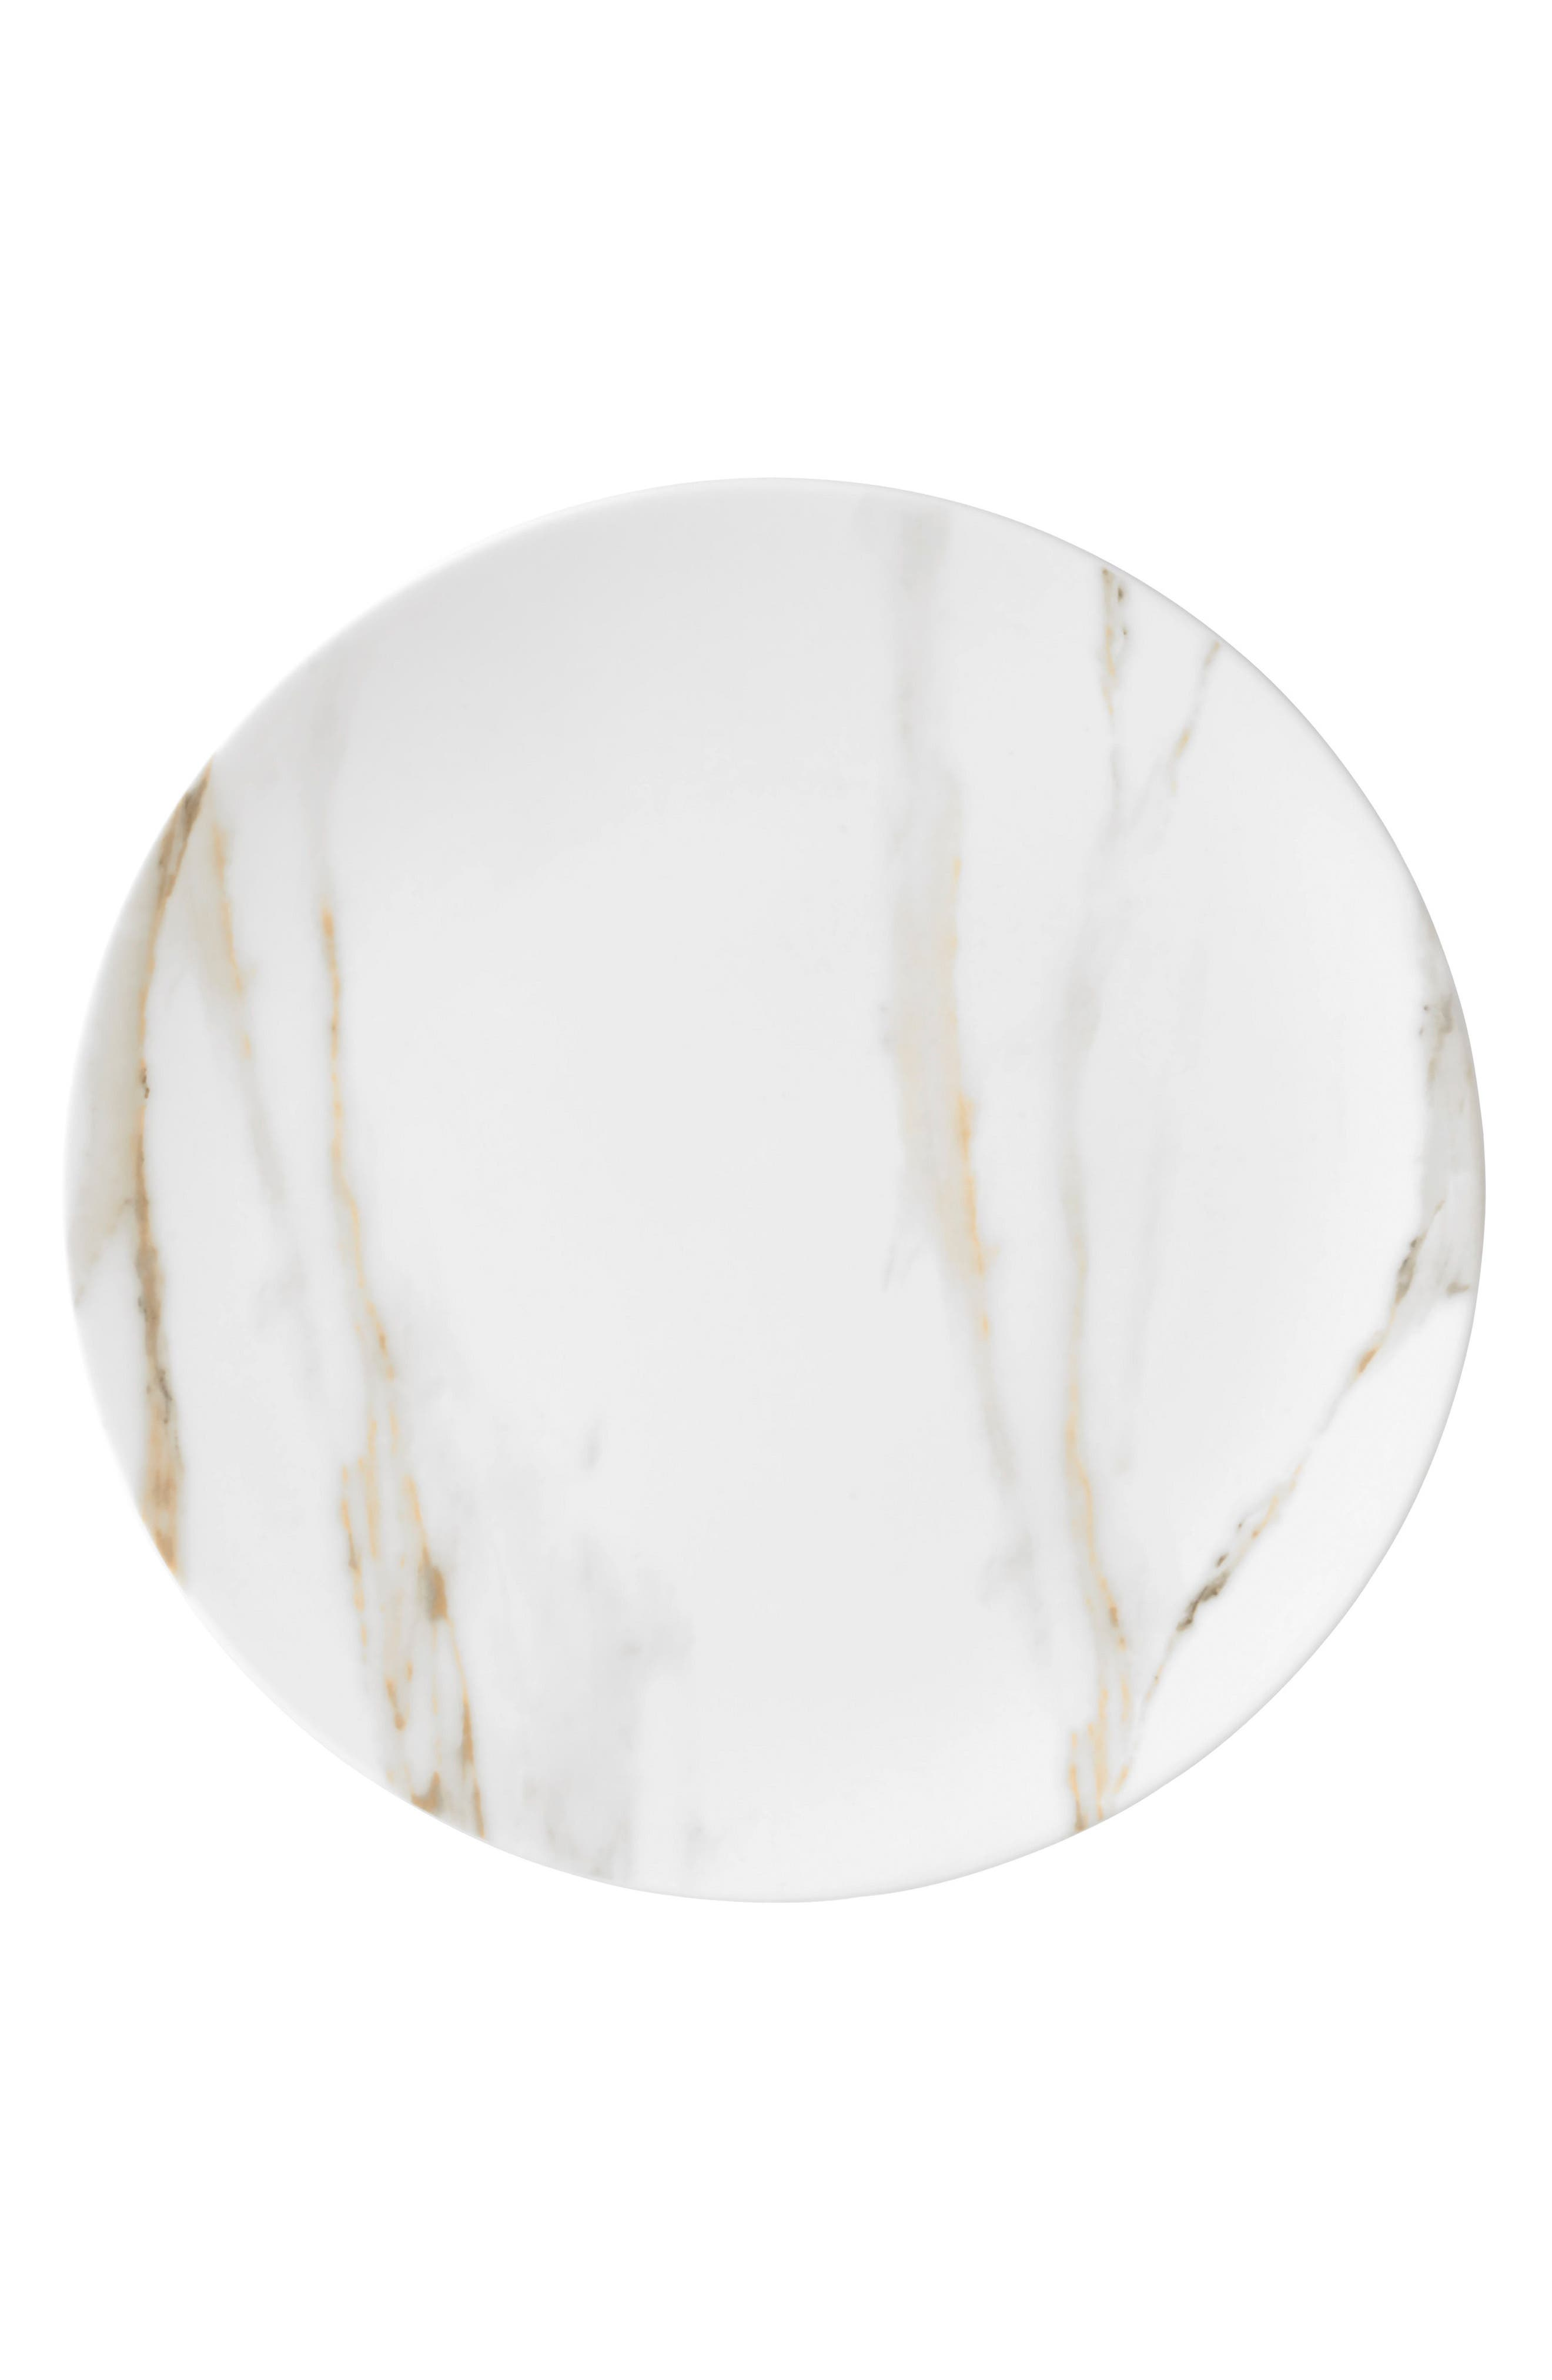 x Wedgwood Venato Imperial Salad Plate,                         Main,                         color, White